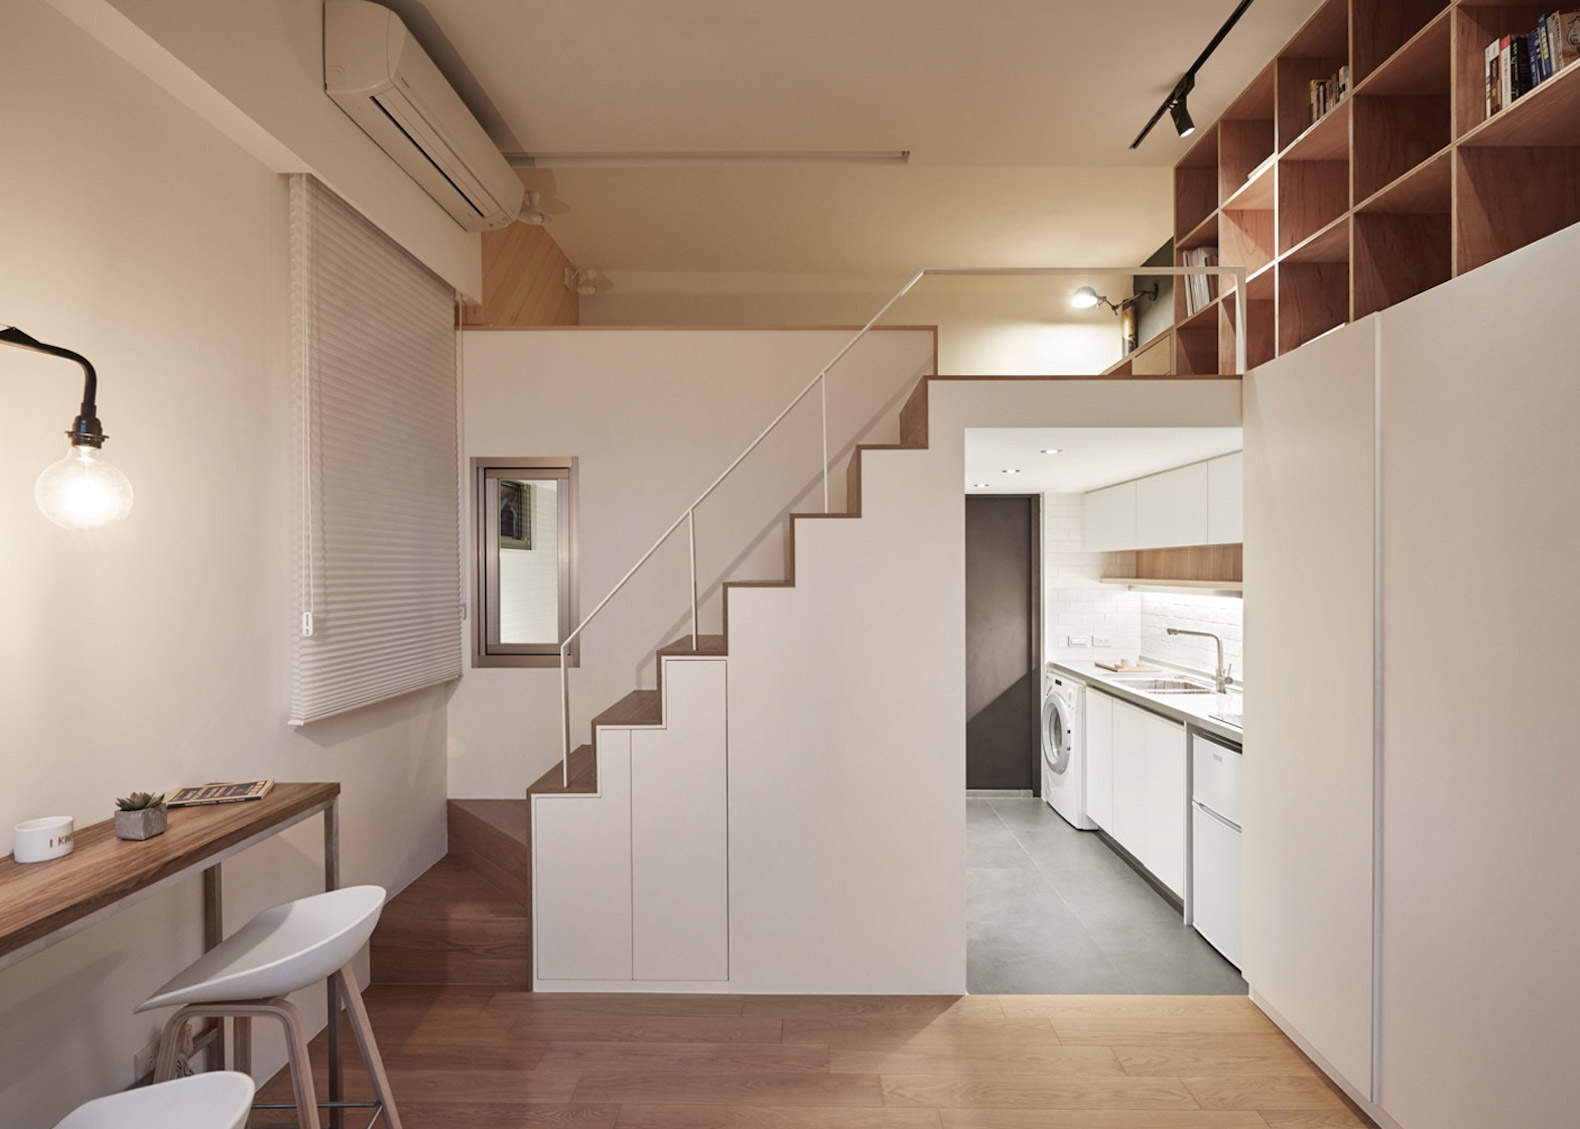 Smart space-saving design transforms a tiny apartment in Taipei into an  upscale home